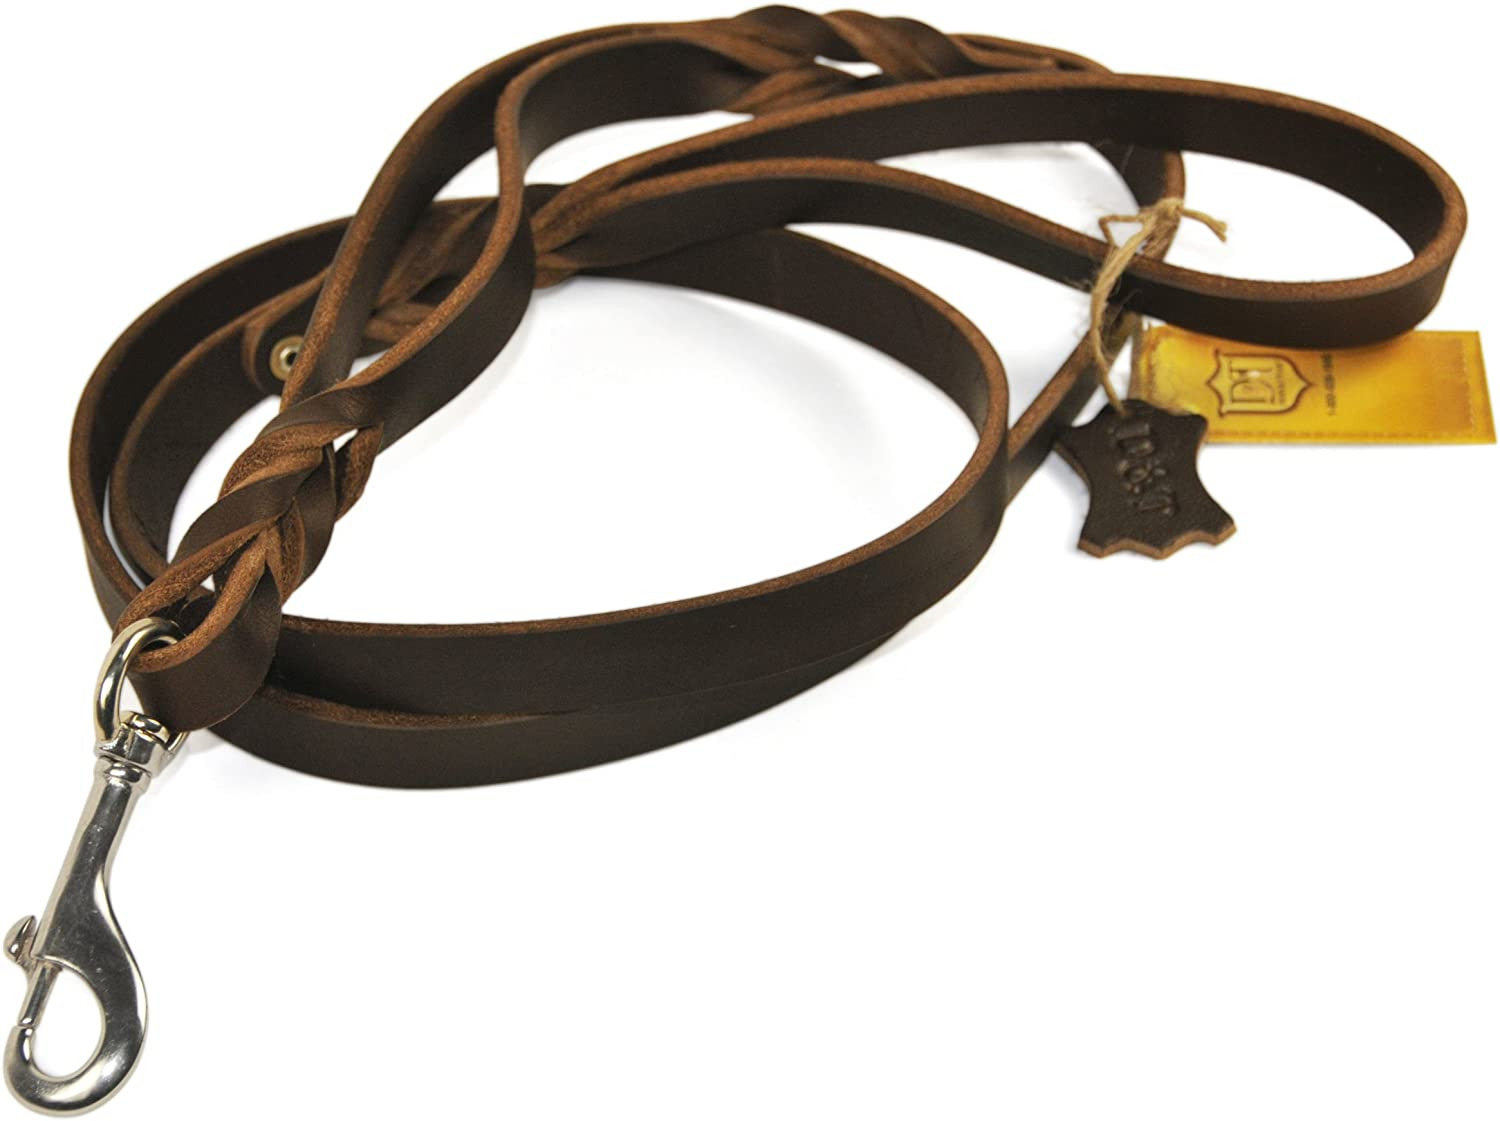 Dean and Tyler Braidy Bunch Dog Leash, Brown 91cm by 2cm Width With Dual Handle And Stainless Steel Snap Hook.